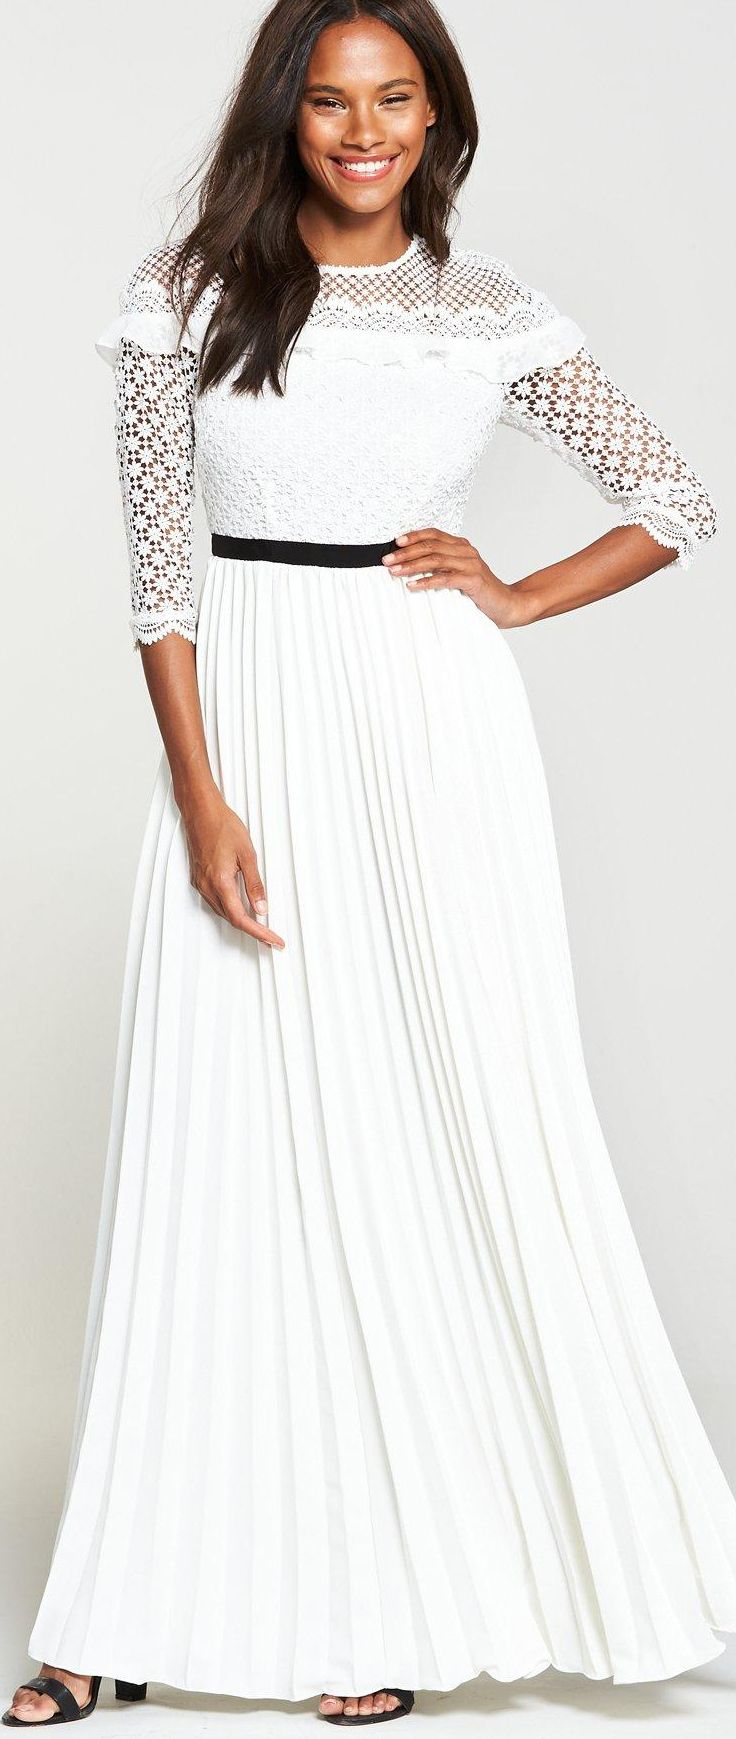 Clean White Lace Dress Perfect For Relaxed Garden Party